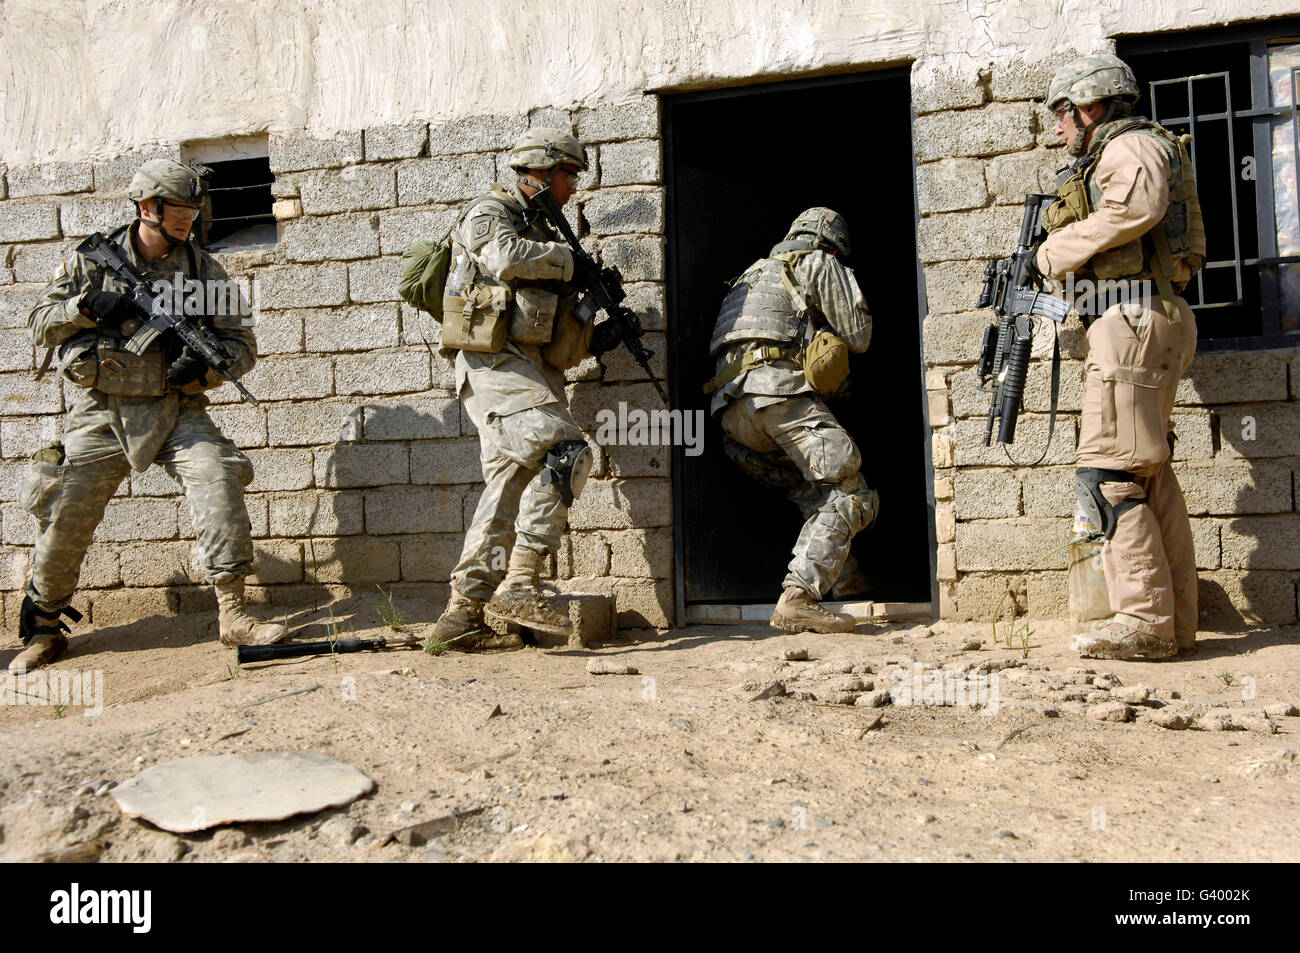 U.S. Army soldiers breaching a house to search for insurgent activities in Zaghiniyat Iraq. & Breaching Door Stock Photos u0026 Breaching Door Stock Images - Alamy pezcame.com